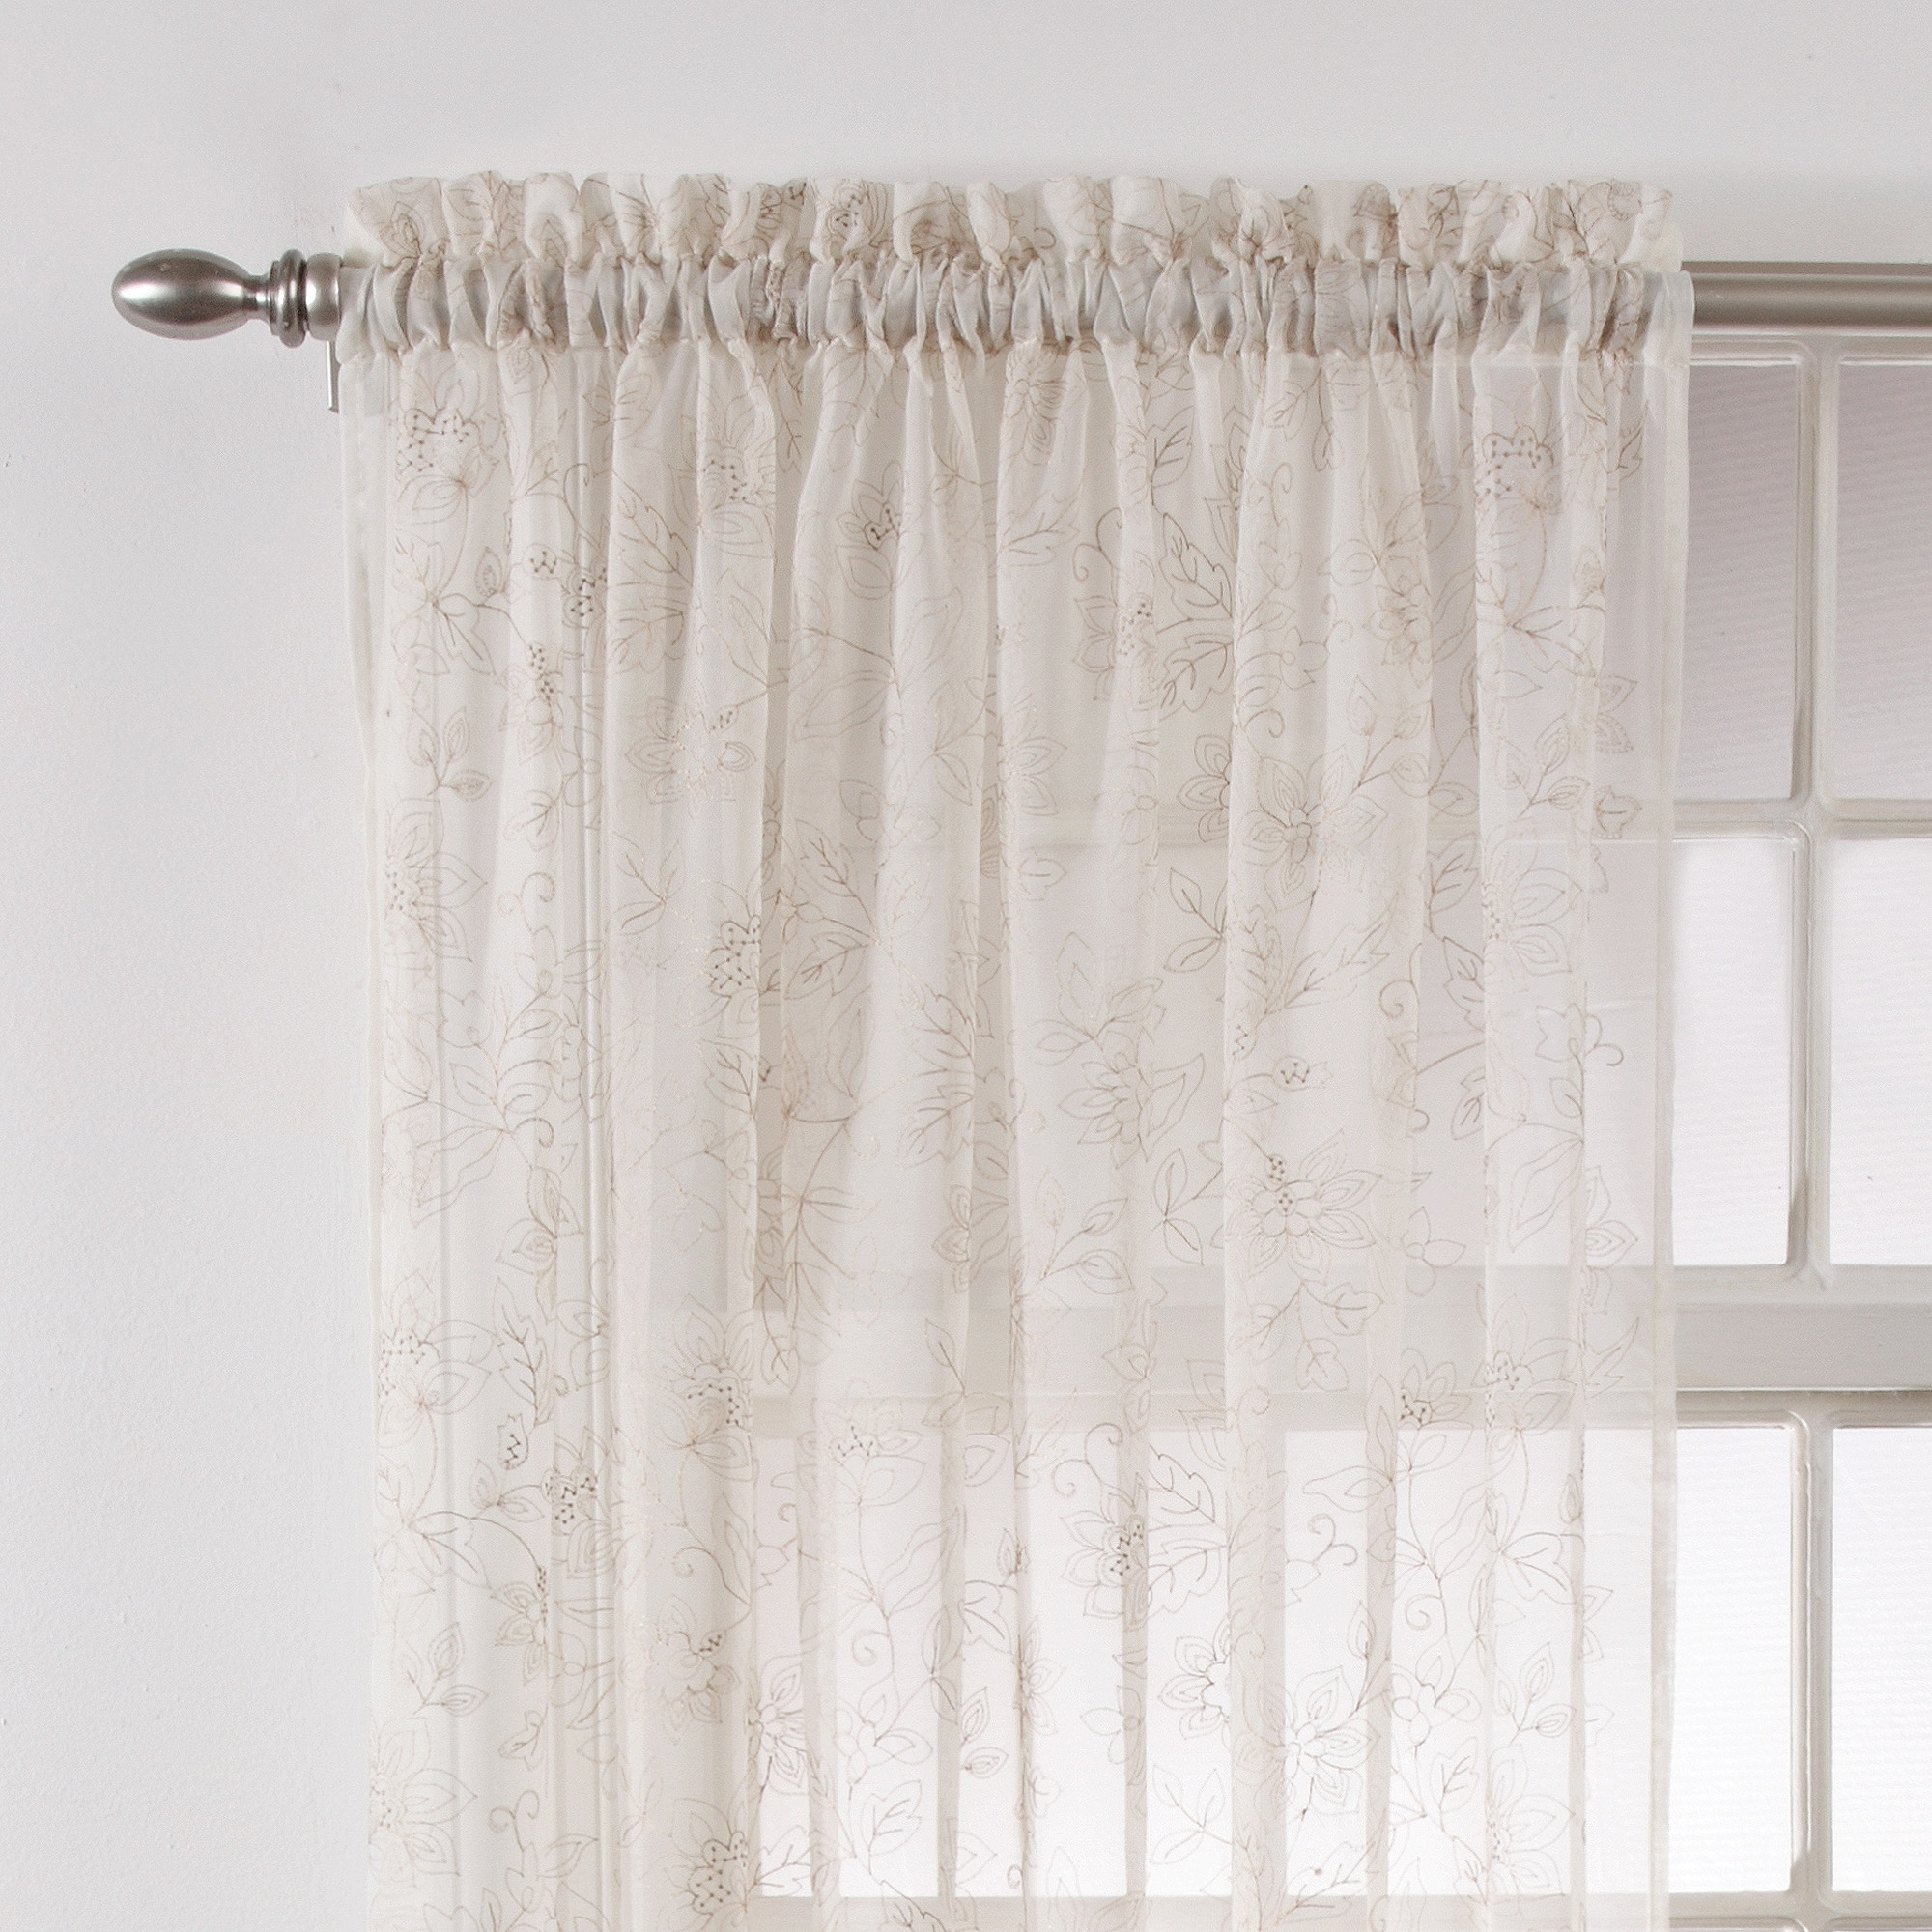 Better Homes And Gardens Embroidered Sheer Curtain Panel Walmart Inside Curtains Sheers (Image 2 of 25)